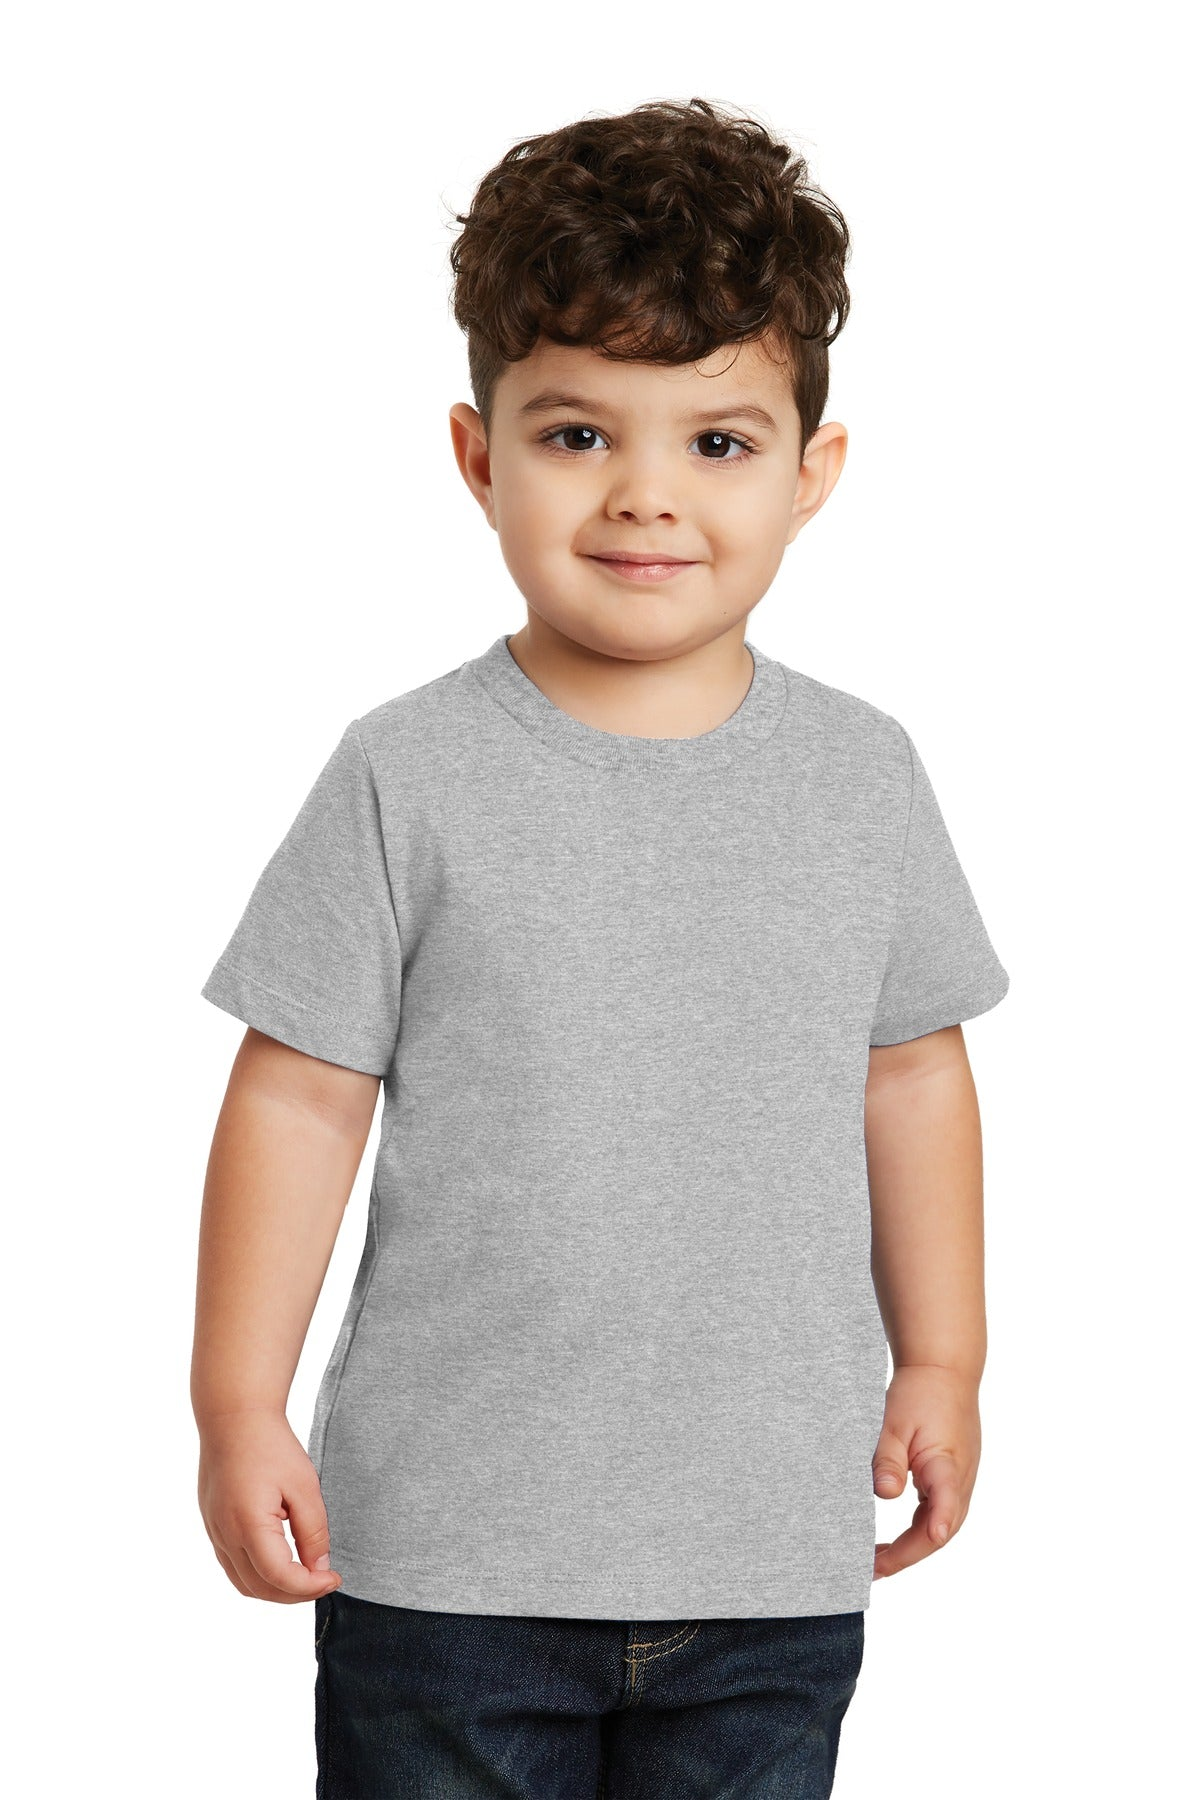 Athletic Heather Port & Company Toddler Fan Favorite T-Shirt